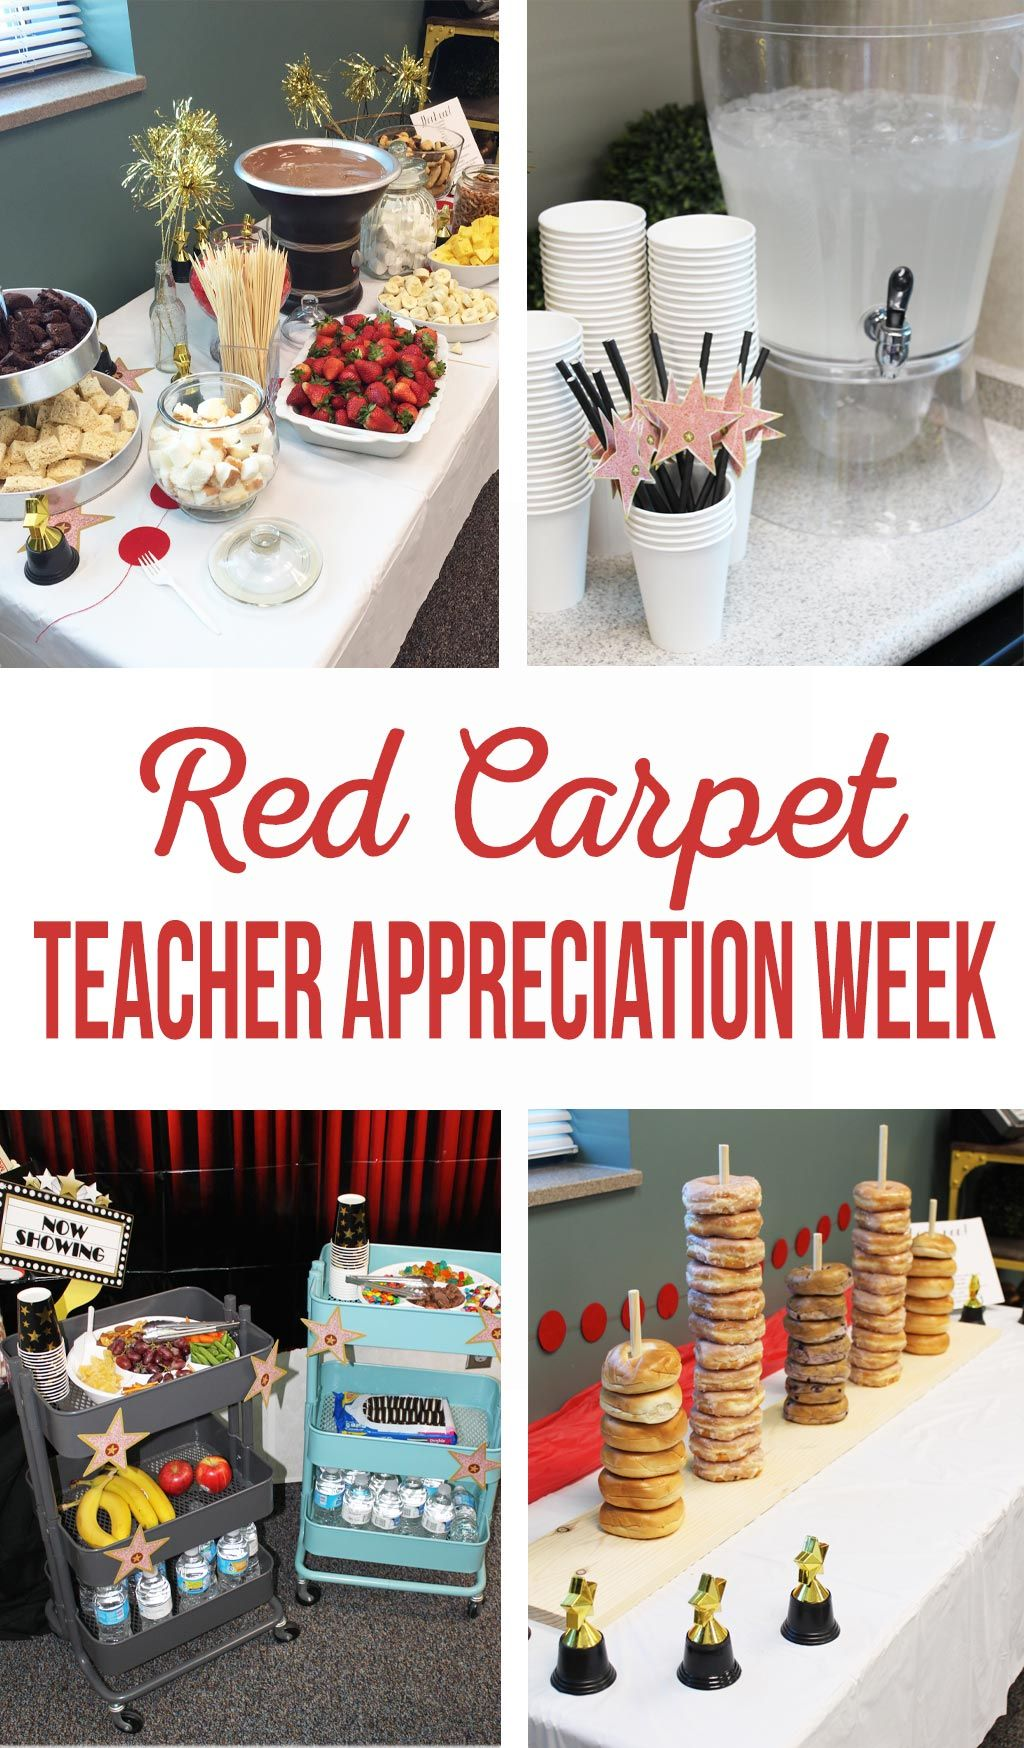 red carpet teacher appreciation week | staff gifts | pinterest